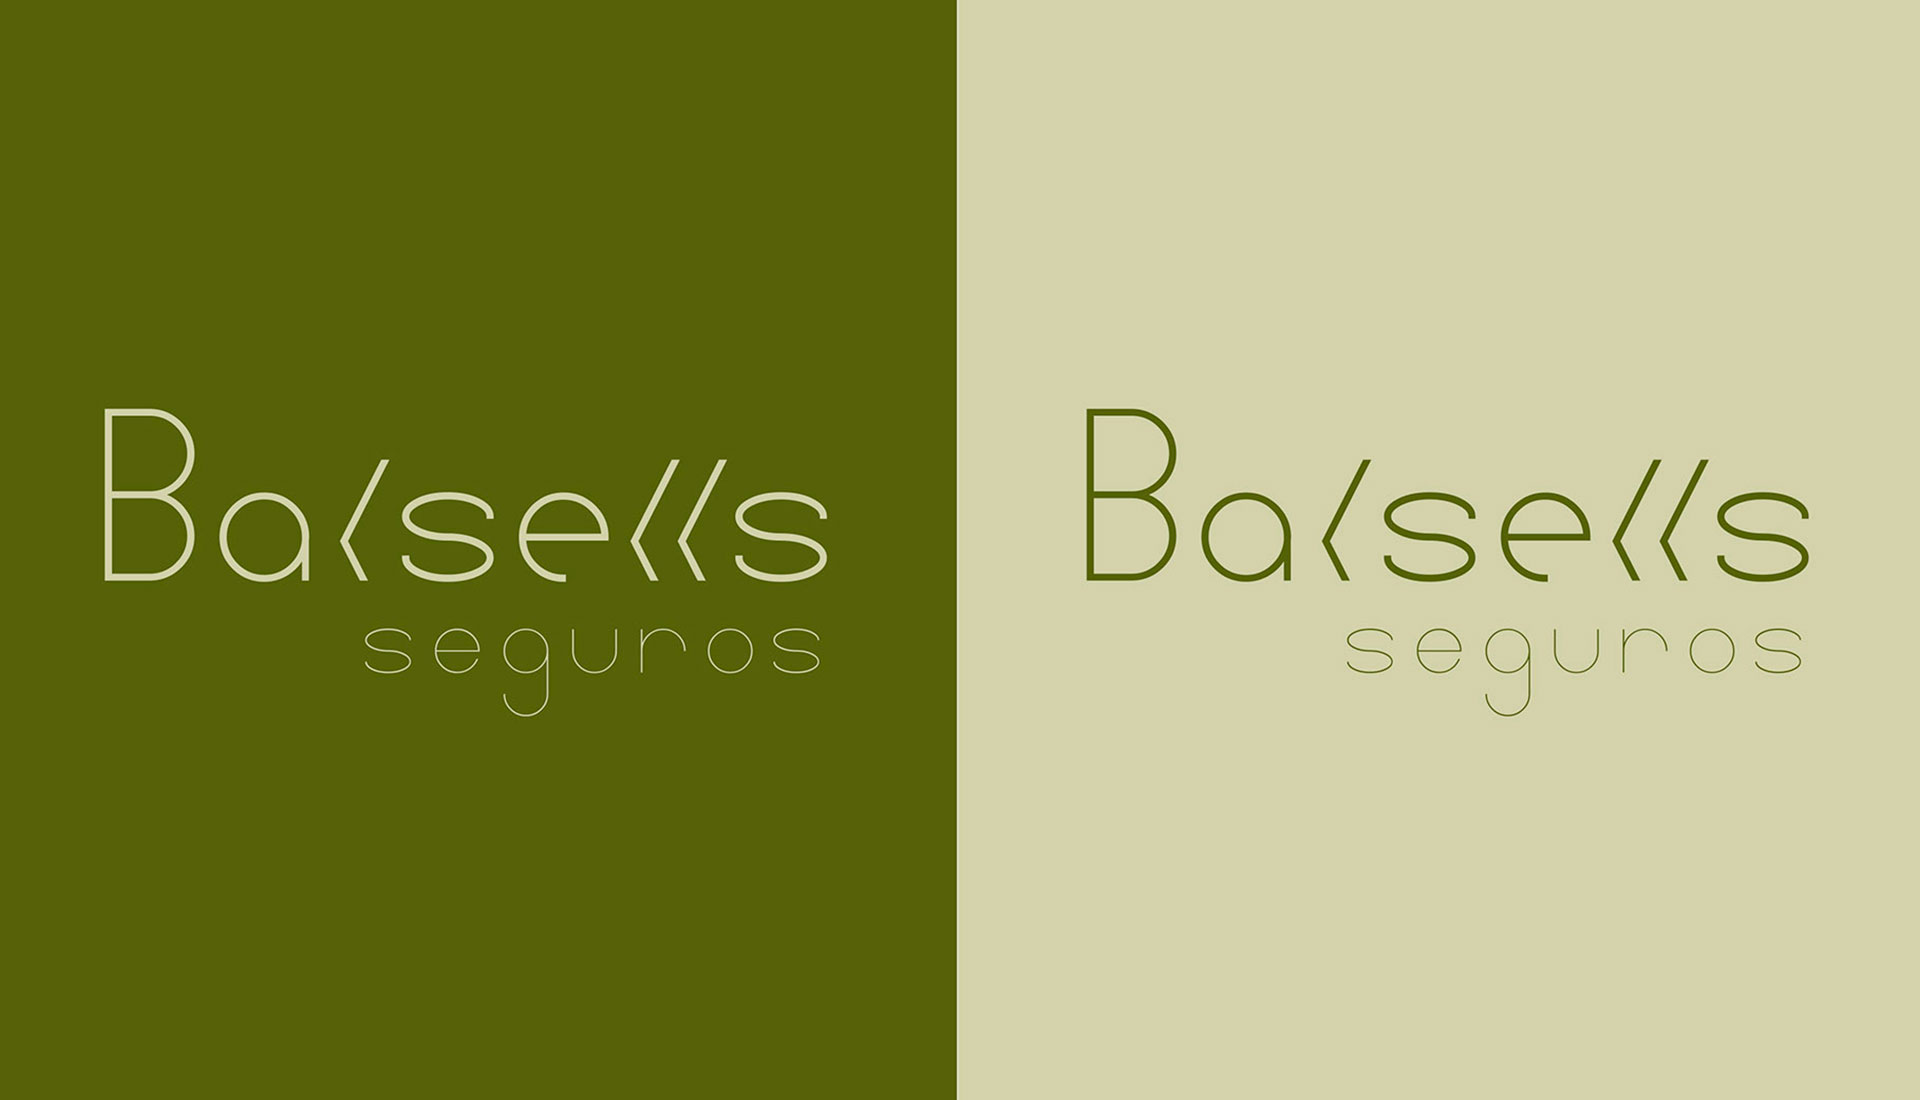 agencia-marketing-digital-valencia-identidad-corporativa-branding-seguros-balsells-07